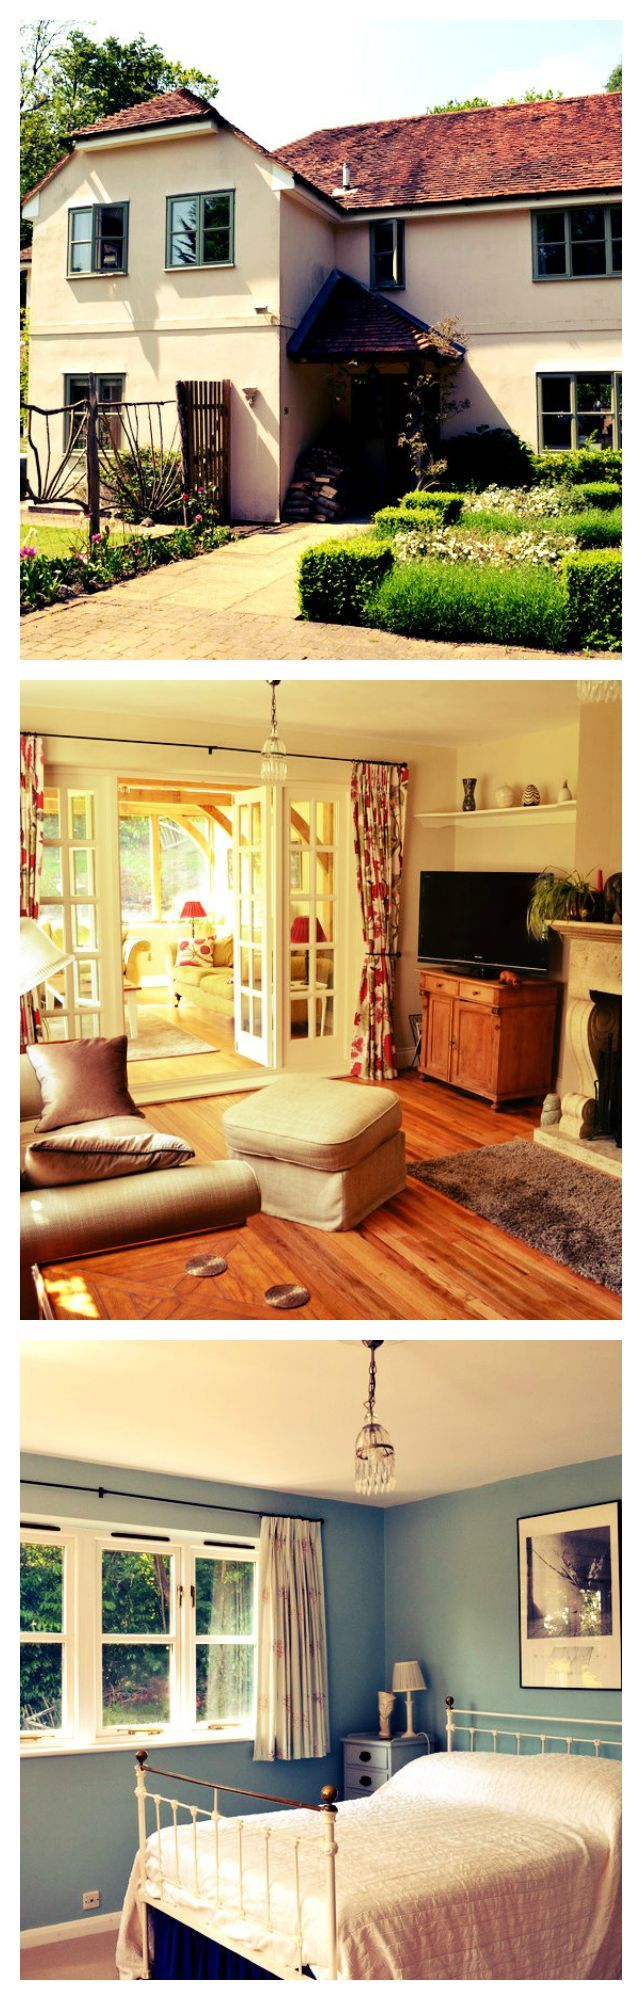 Stay in this amazing countryside home in Kent, UK FREE via house and pet-sitting! See more details here: http://www.travellingweasels.com/2015/04/house-sitting-opportunities.html